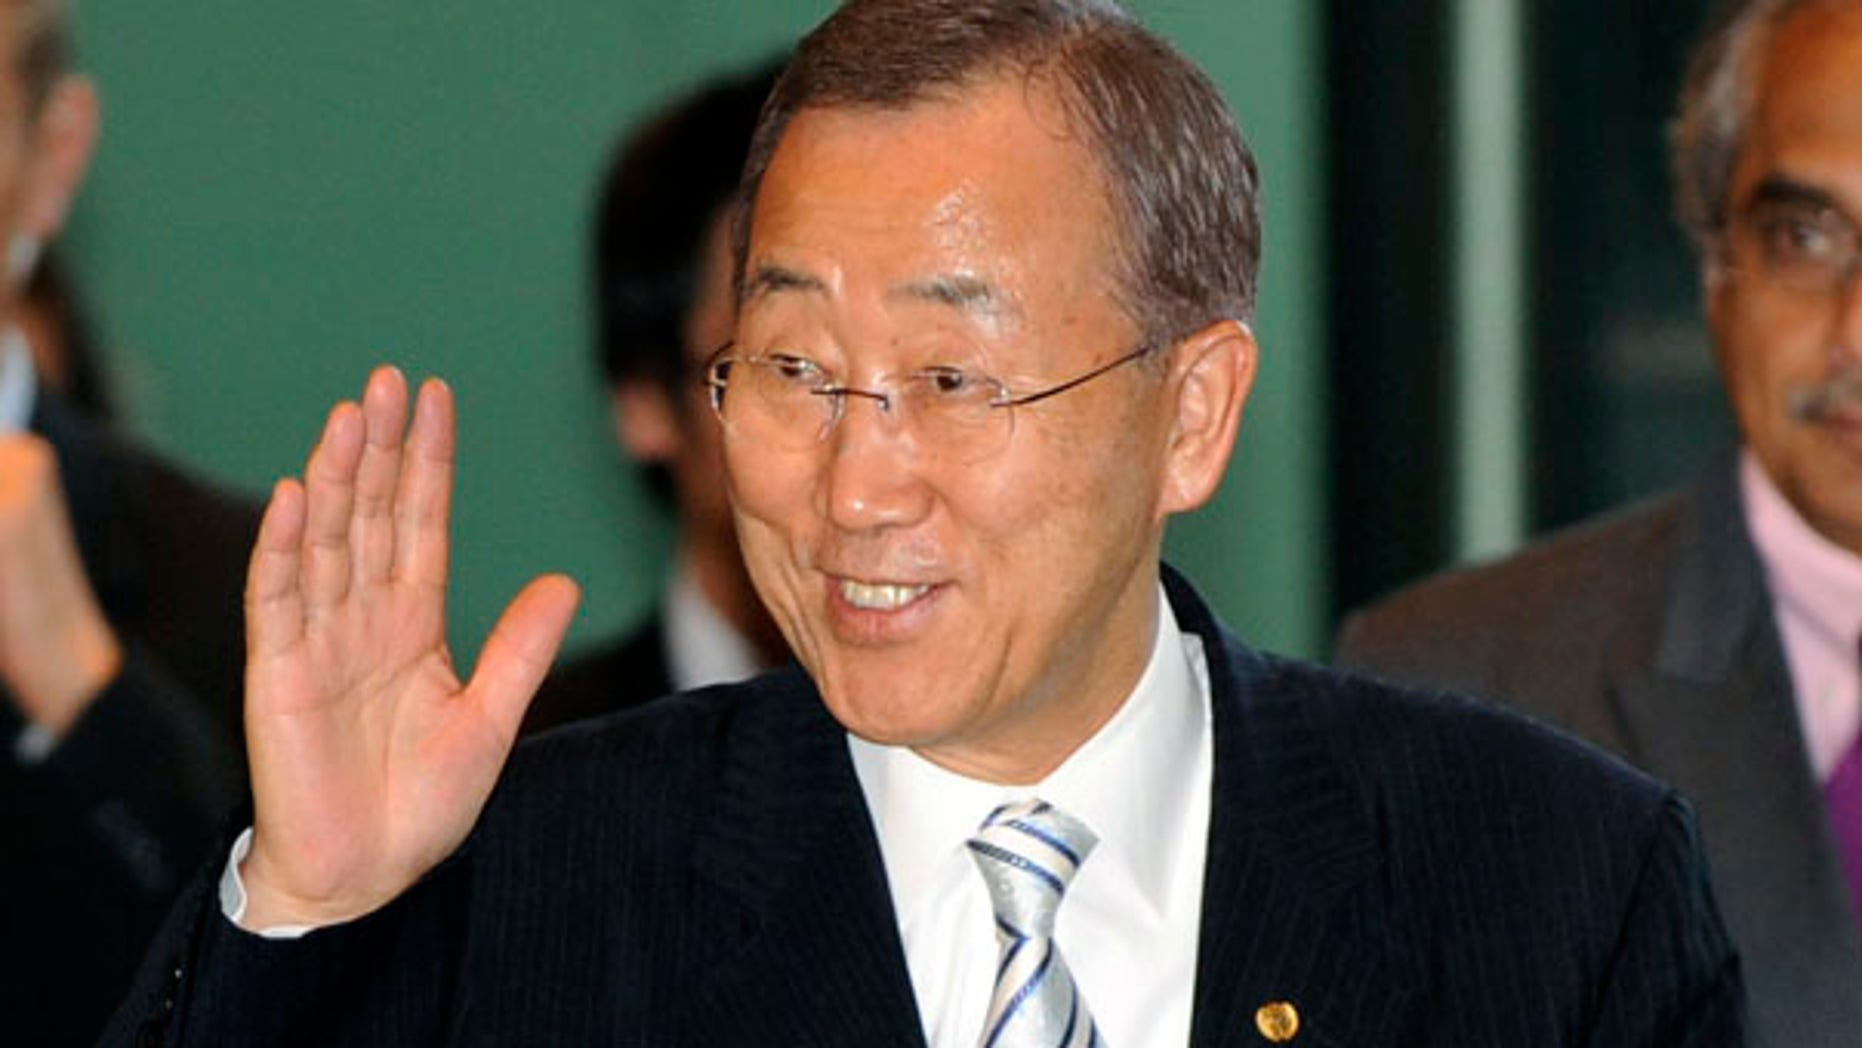 Aug. 4: U.N. Secretary-General Ban Ki-moon waves to reporters in Tokyo. A former American prosecutor has accused Ban of hiring discrimination based on gender and nationality.